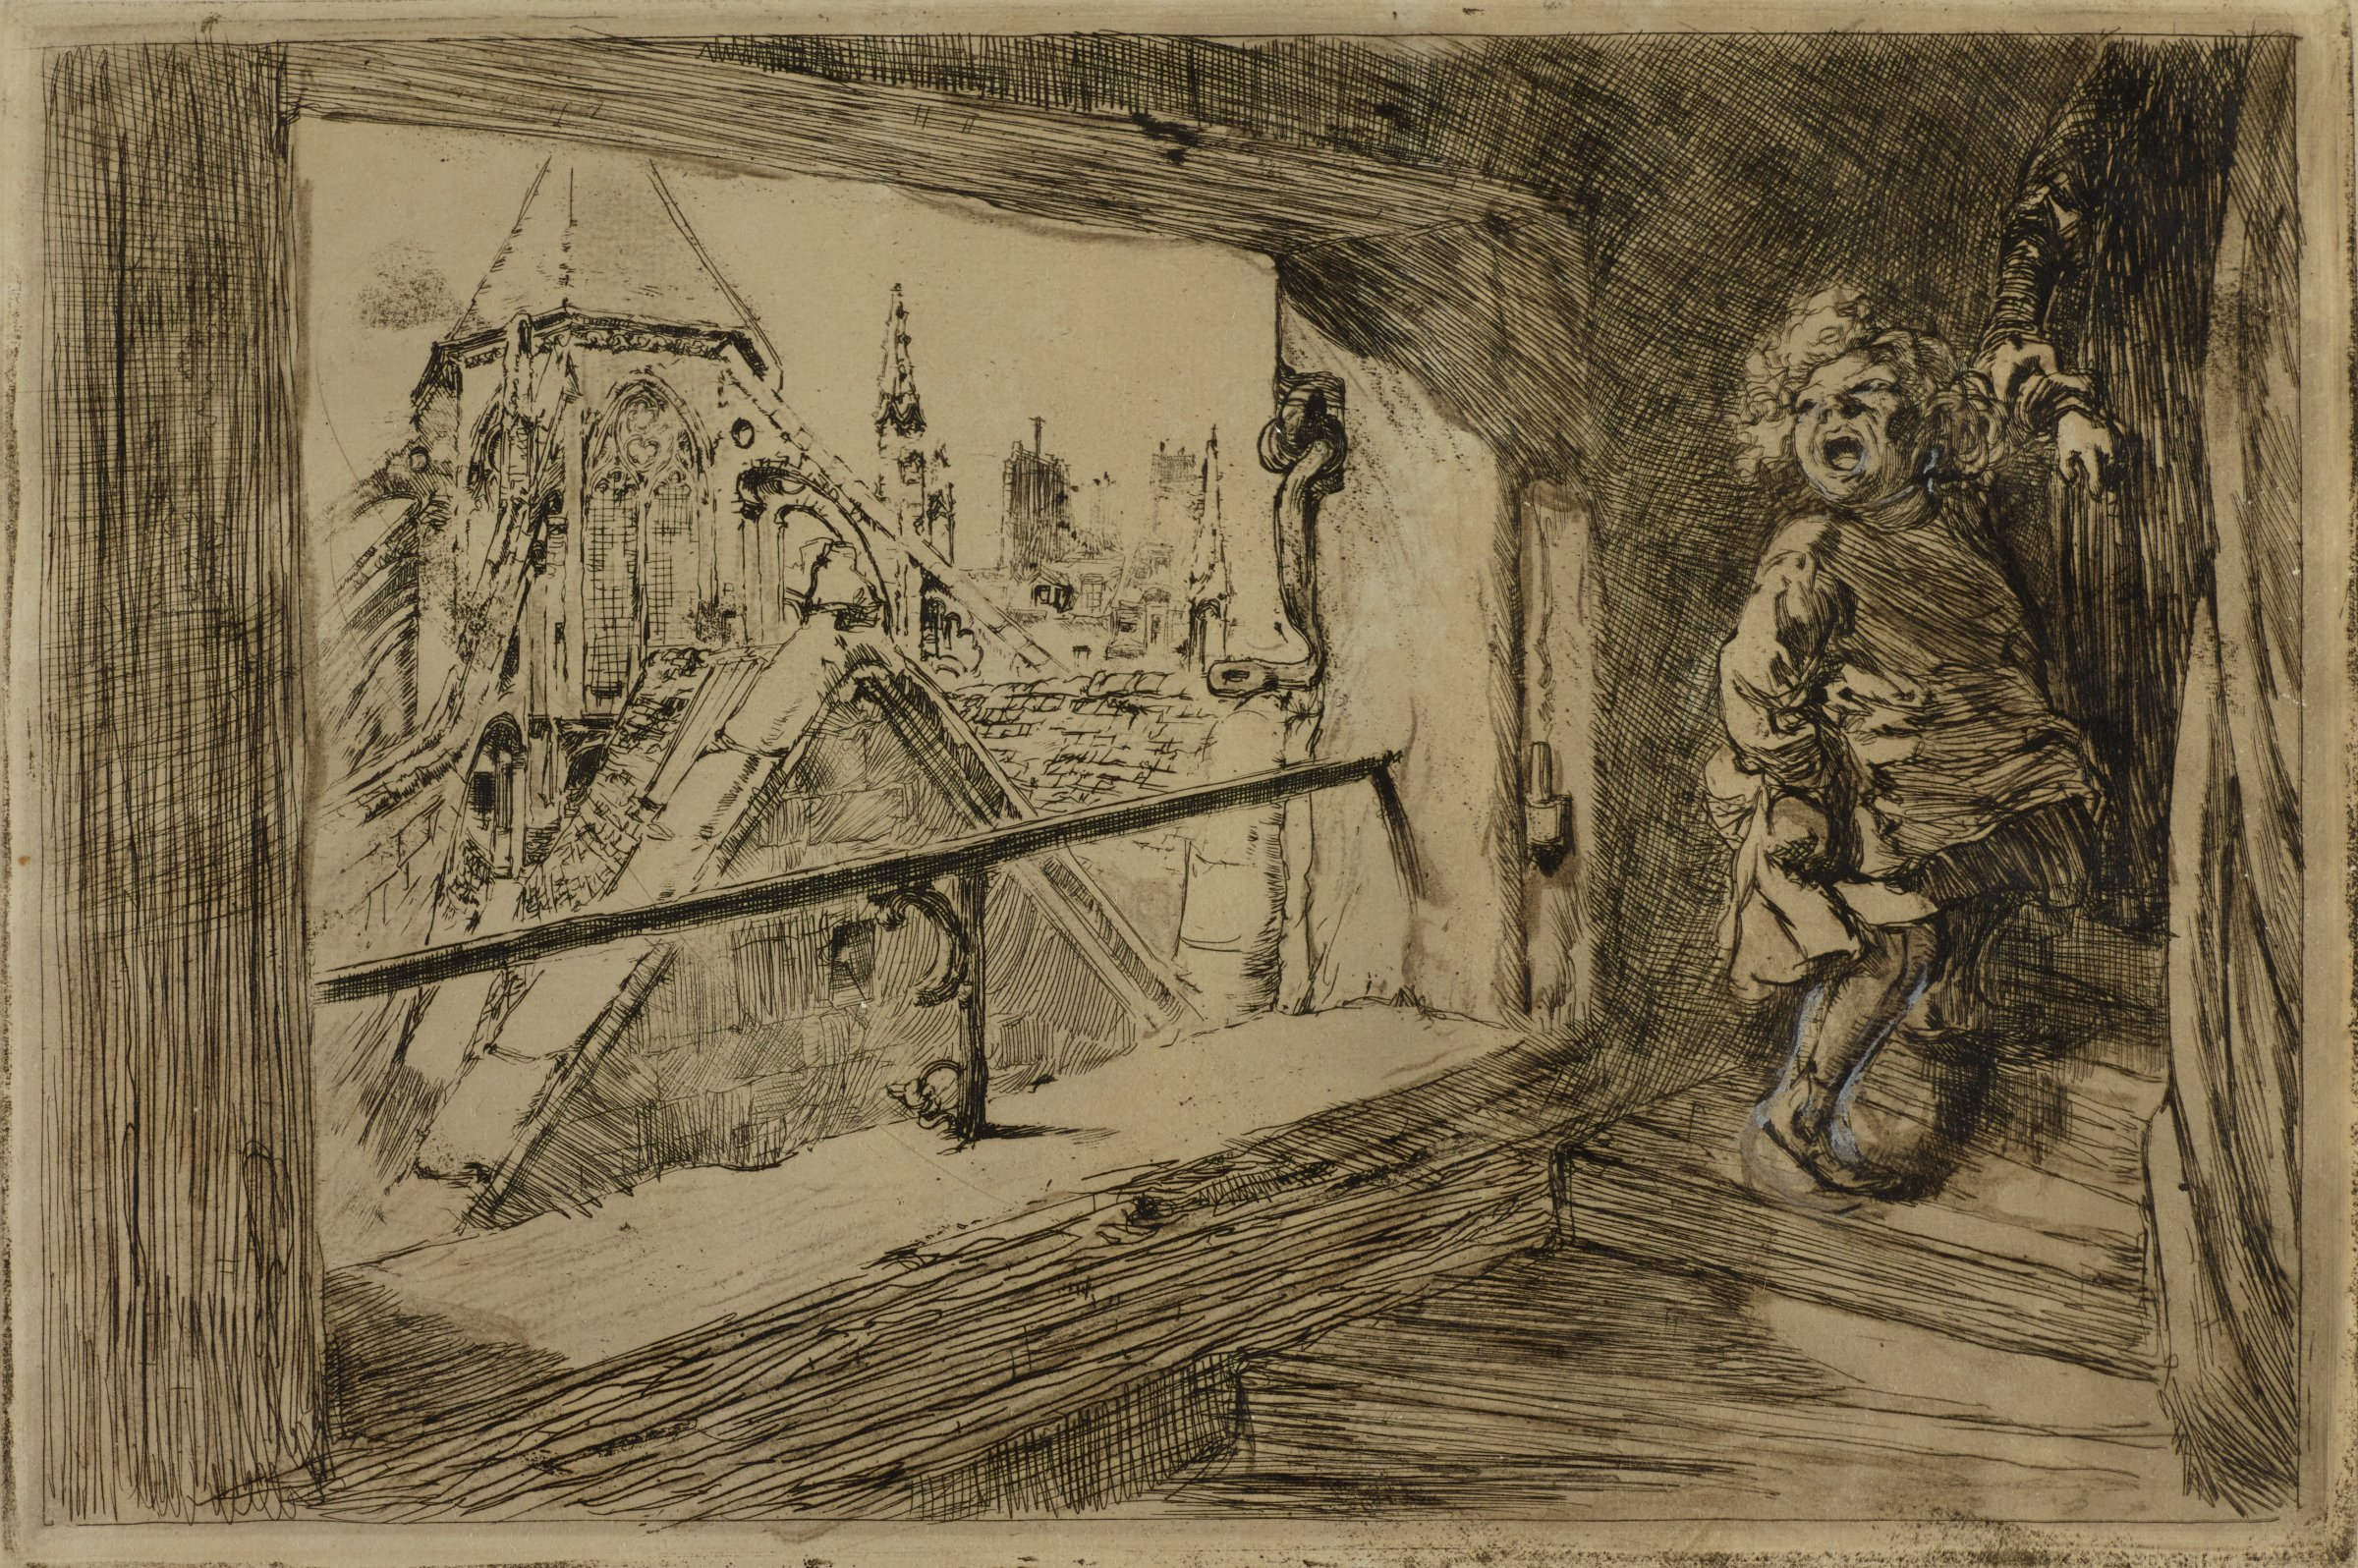 On the right, a child is being pulled up the stairs by a figure that cannot be fully seen. On the left is an open window with railing looking out onto the roofs of the church.